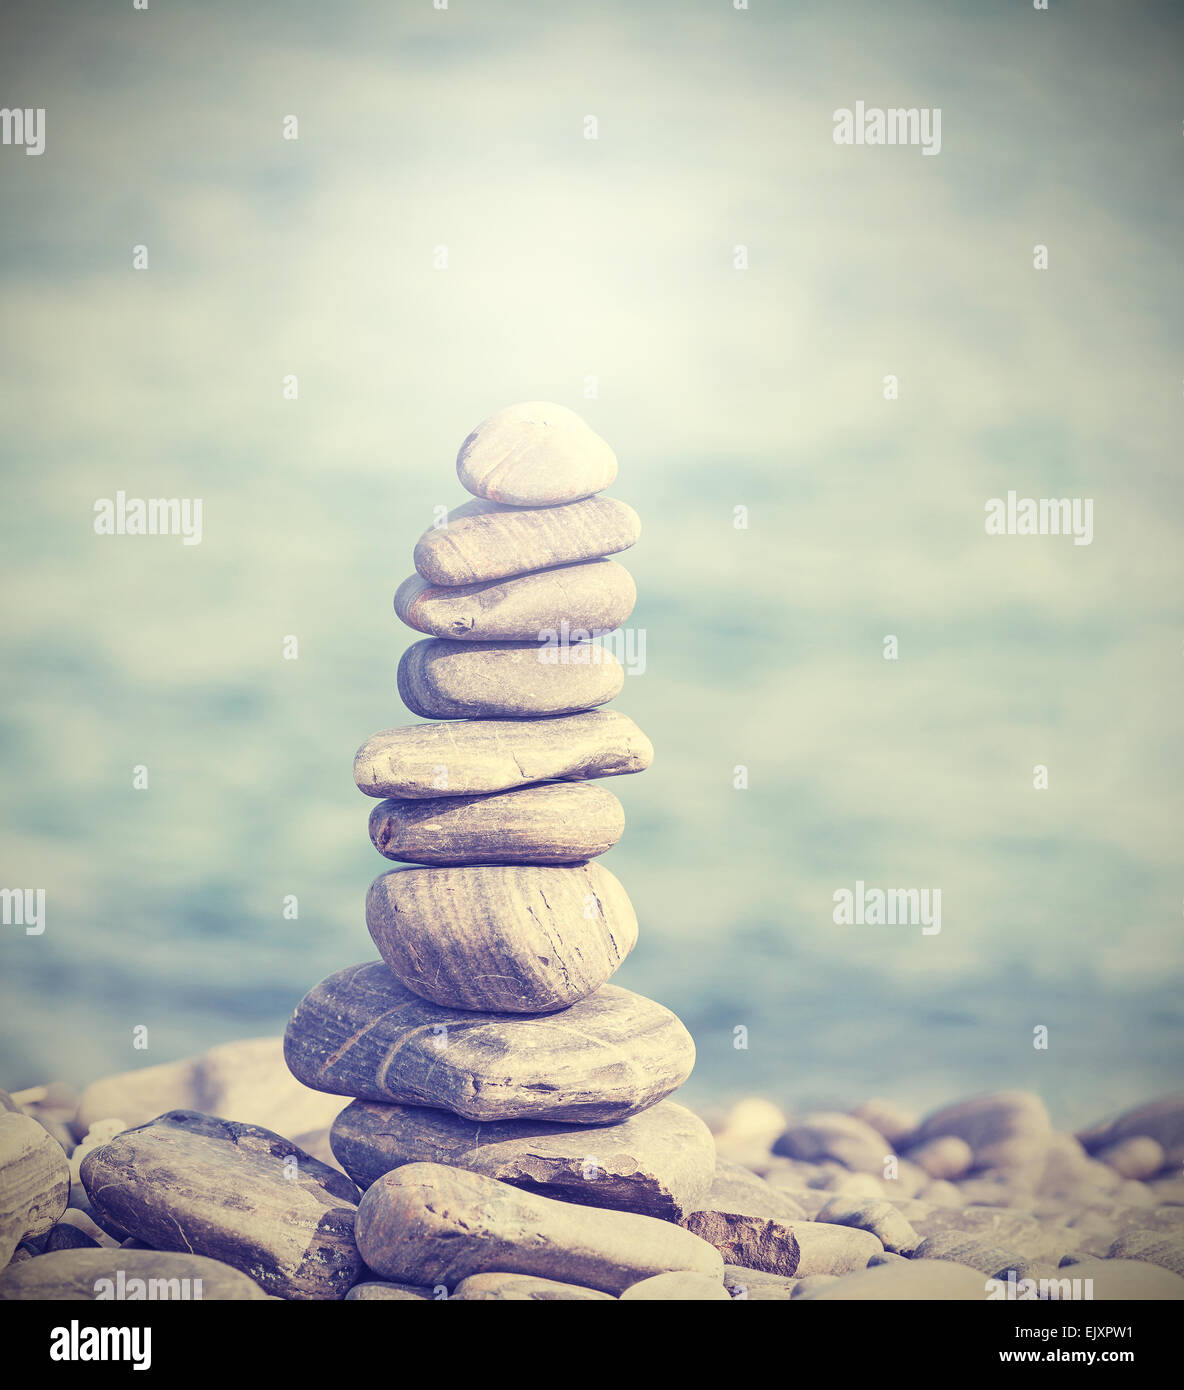 Retro filtered heap of stones, Zen spa concept background. - Stock Image